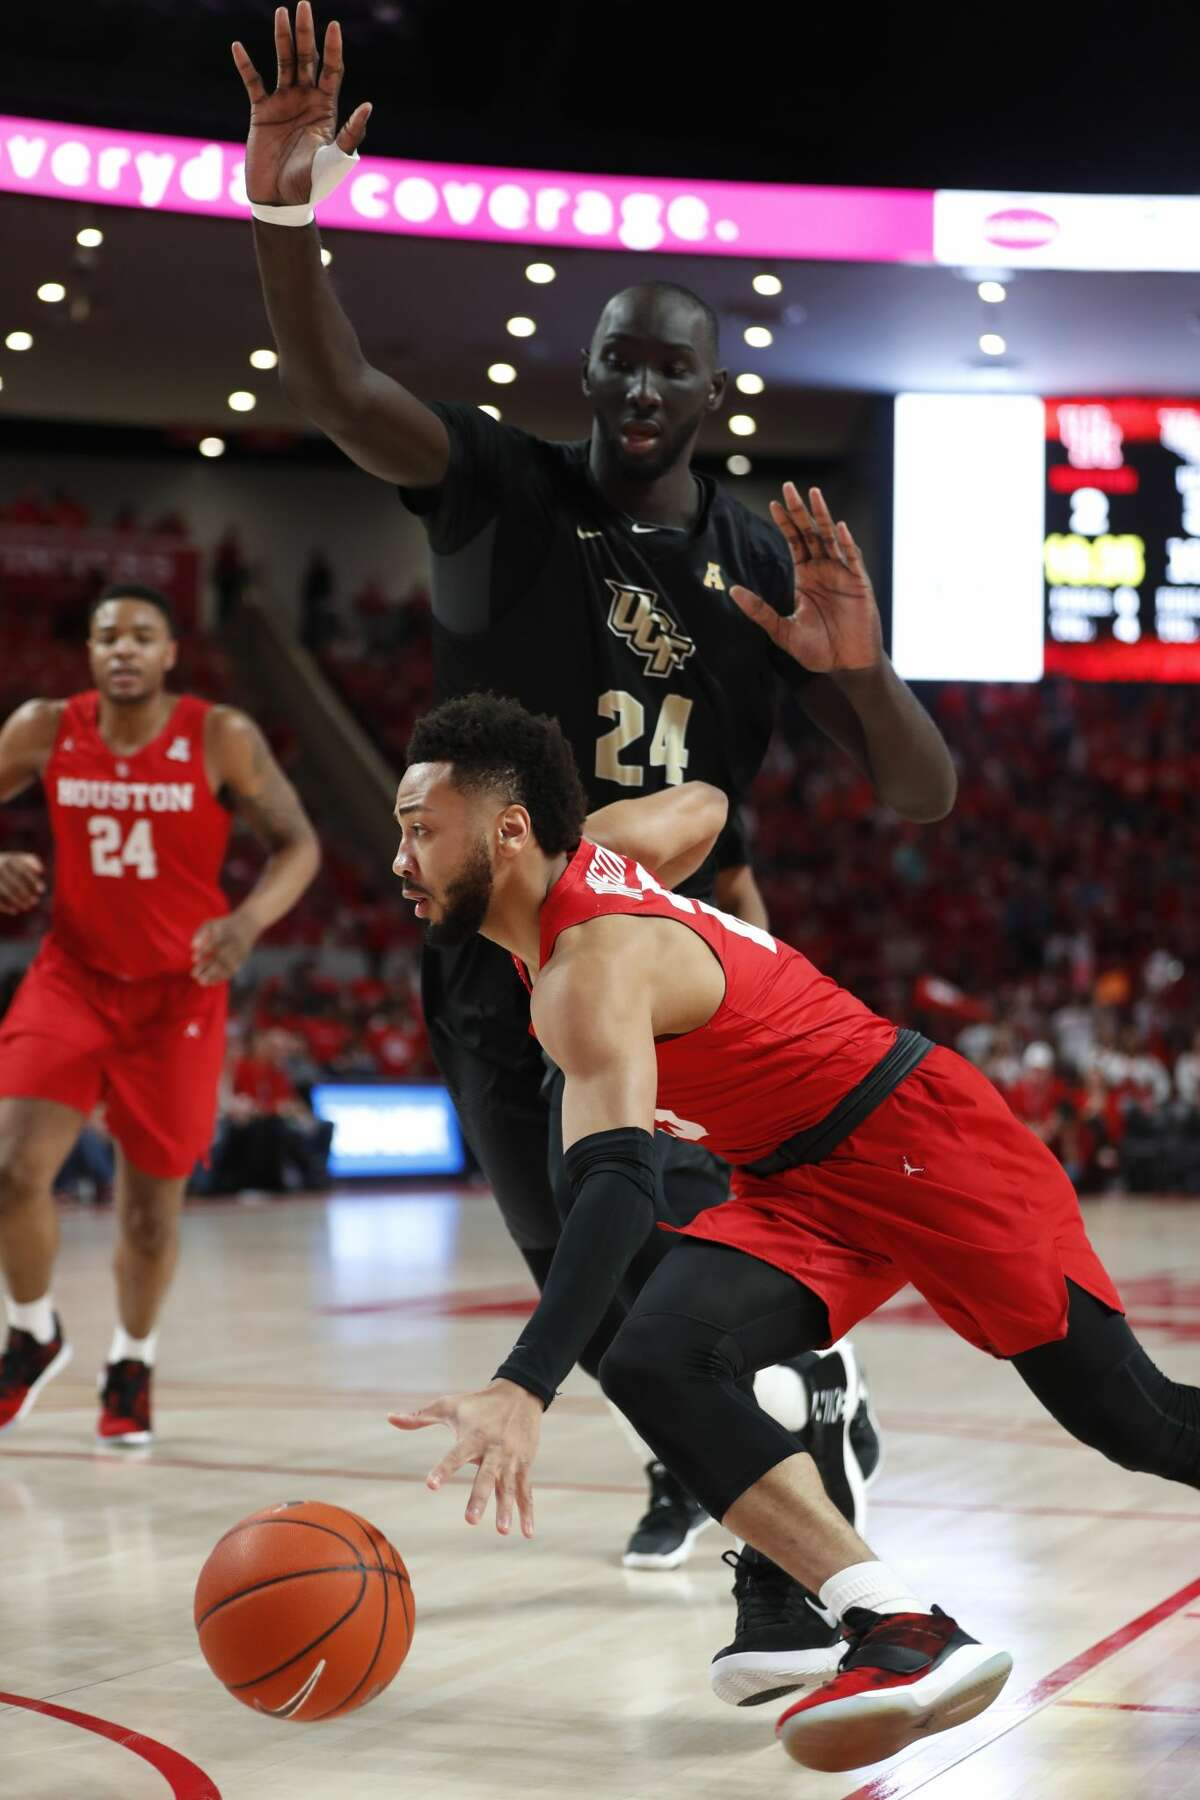 Houston guard Galen Robinson Jr. (25) drives to the basket past Central Florida center Tacko Fall (24) during the first half on a NCAA basketball game at Fertitta Center on Saturday, March 2, 2019, in Houston.